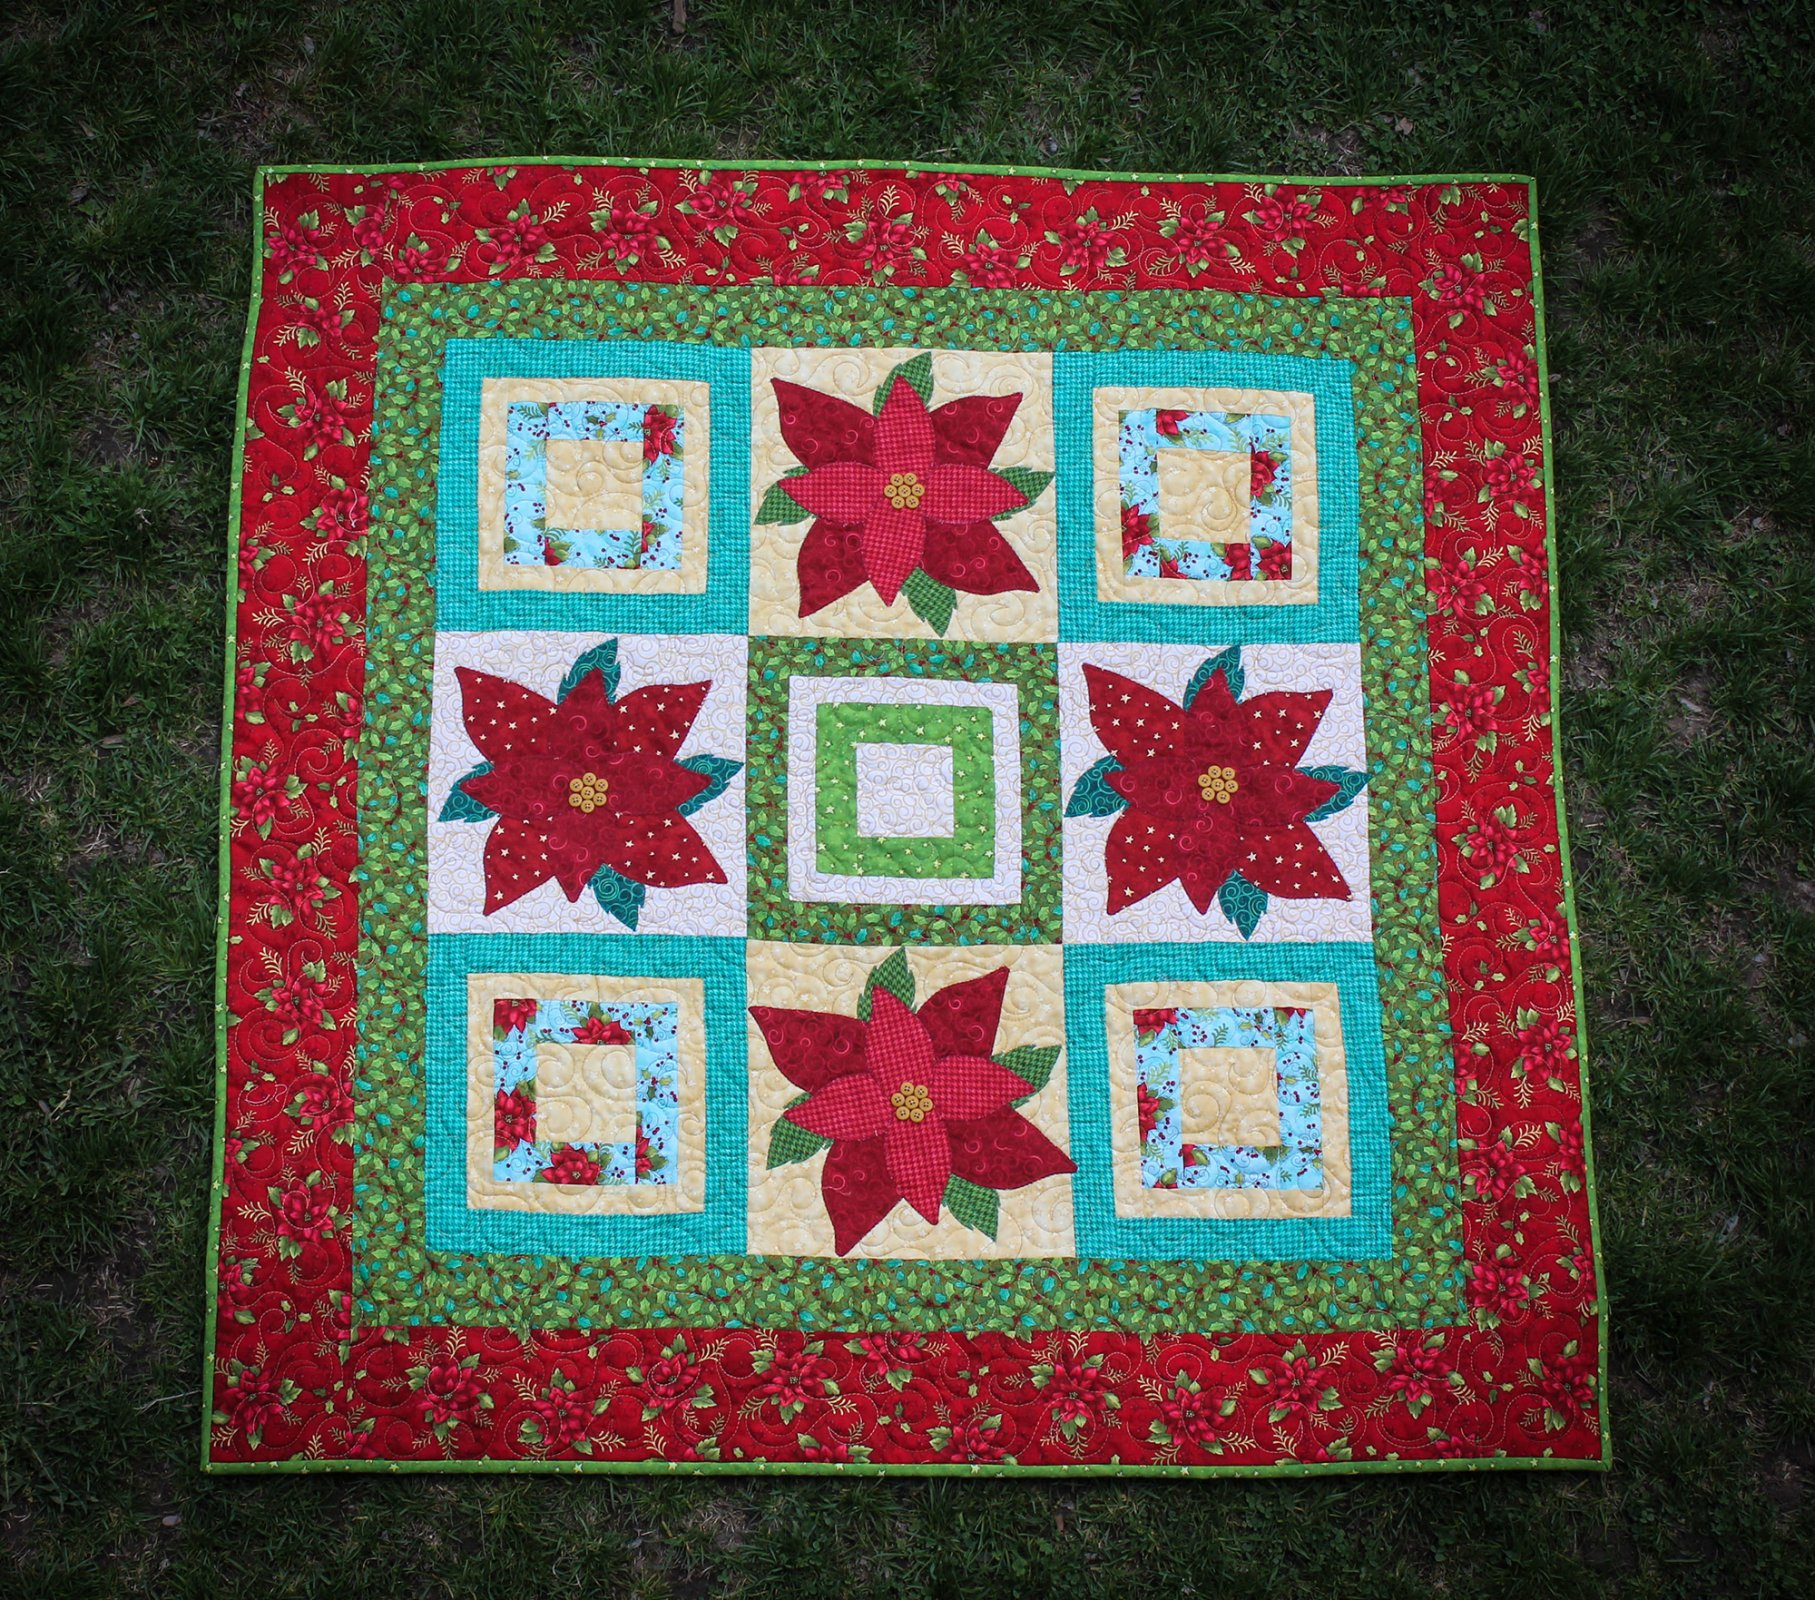 Poinsettia Patch Quilt Kit